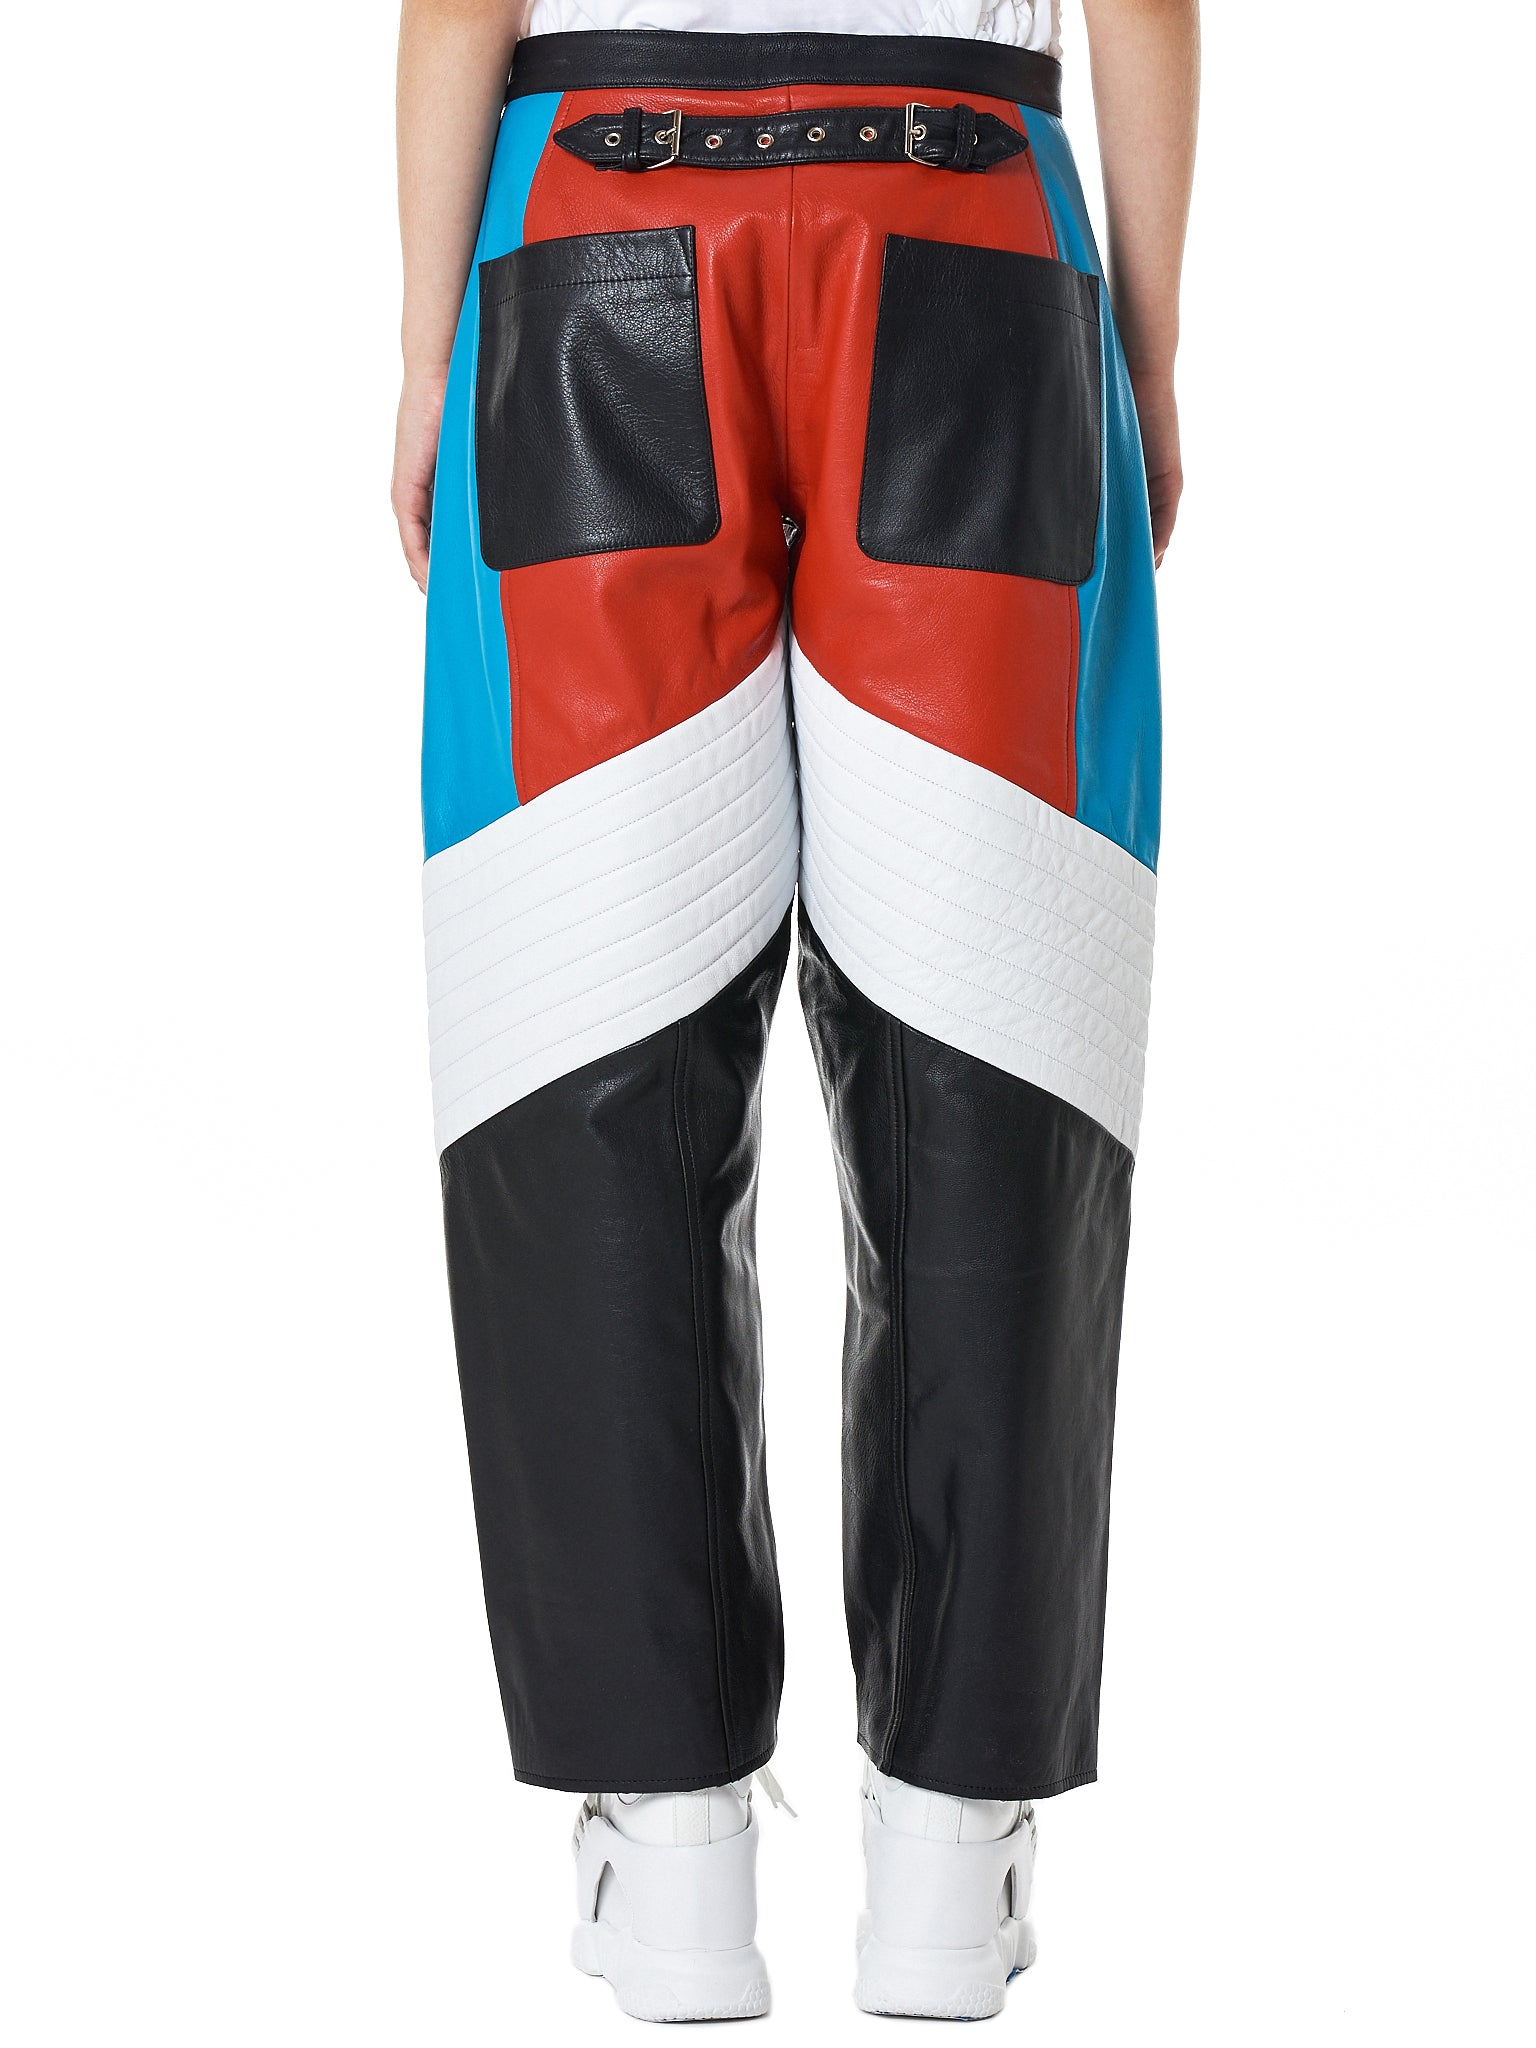 Marques Almeida Trouser - Hlorenzo Back